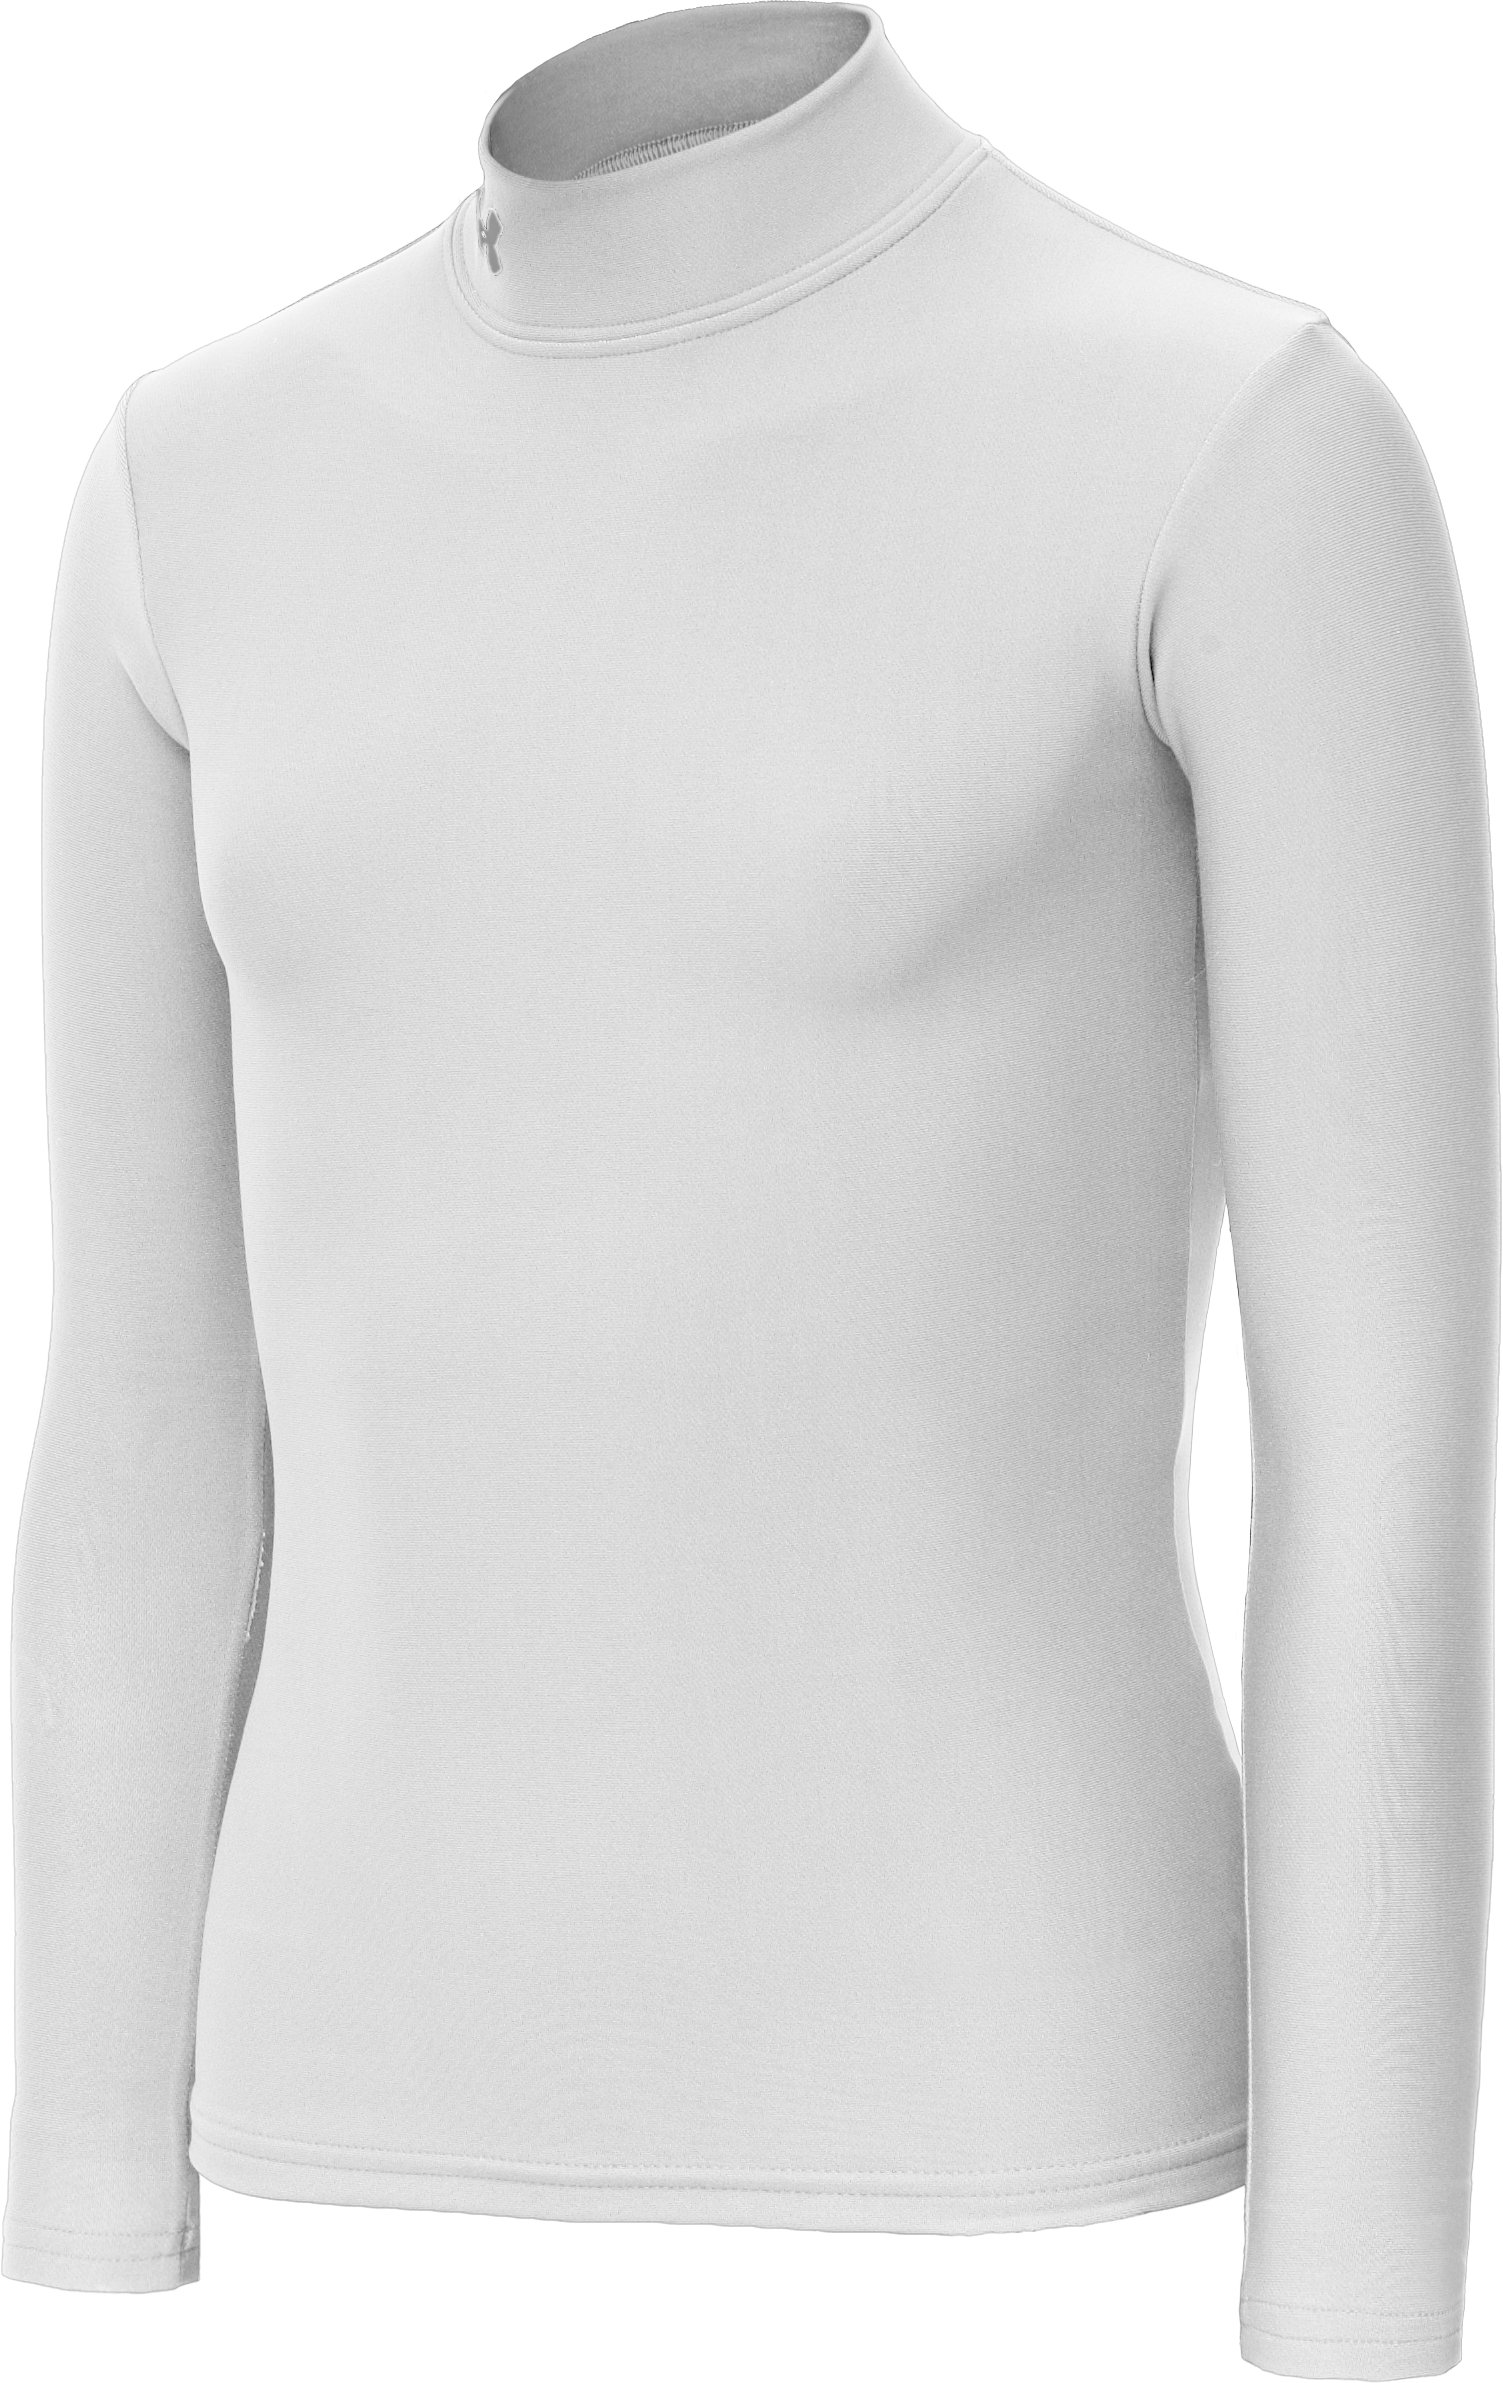 Girls' ColdGear® Fitted Long Sleeve Mock, White, zoomed image